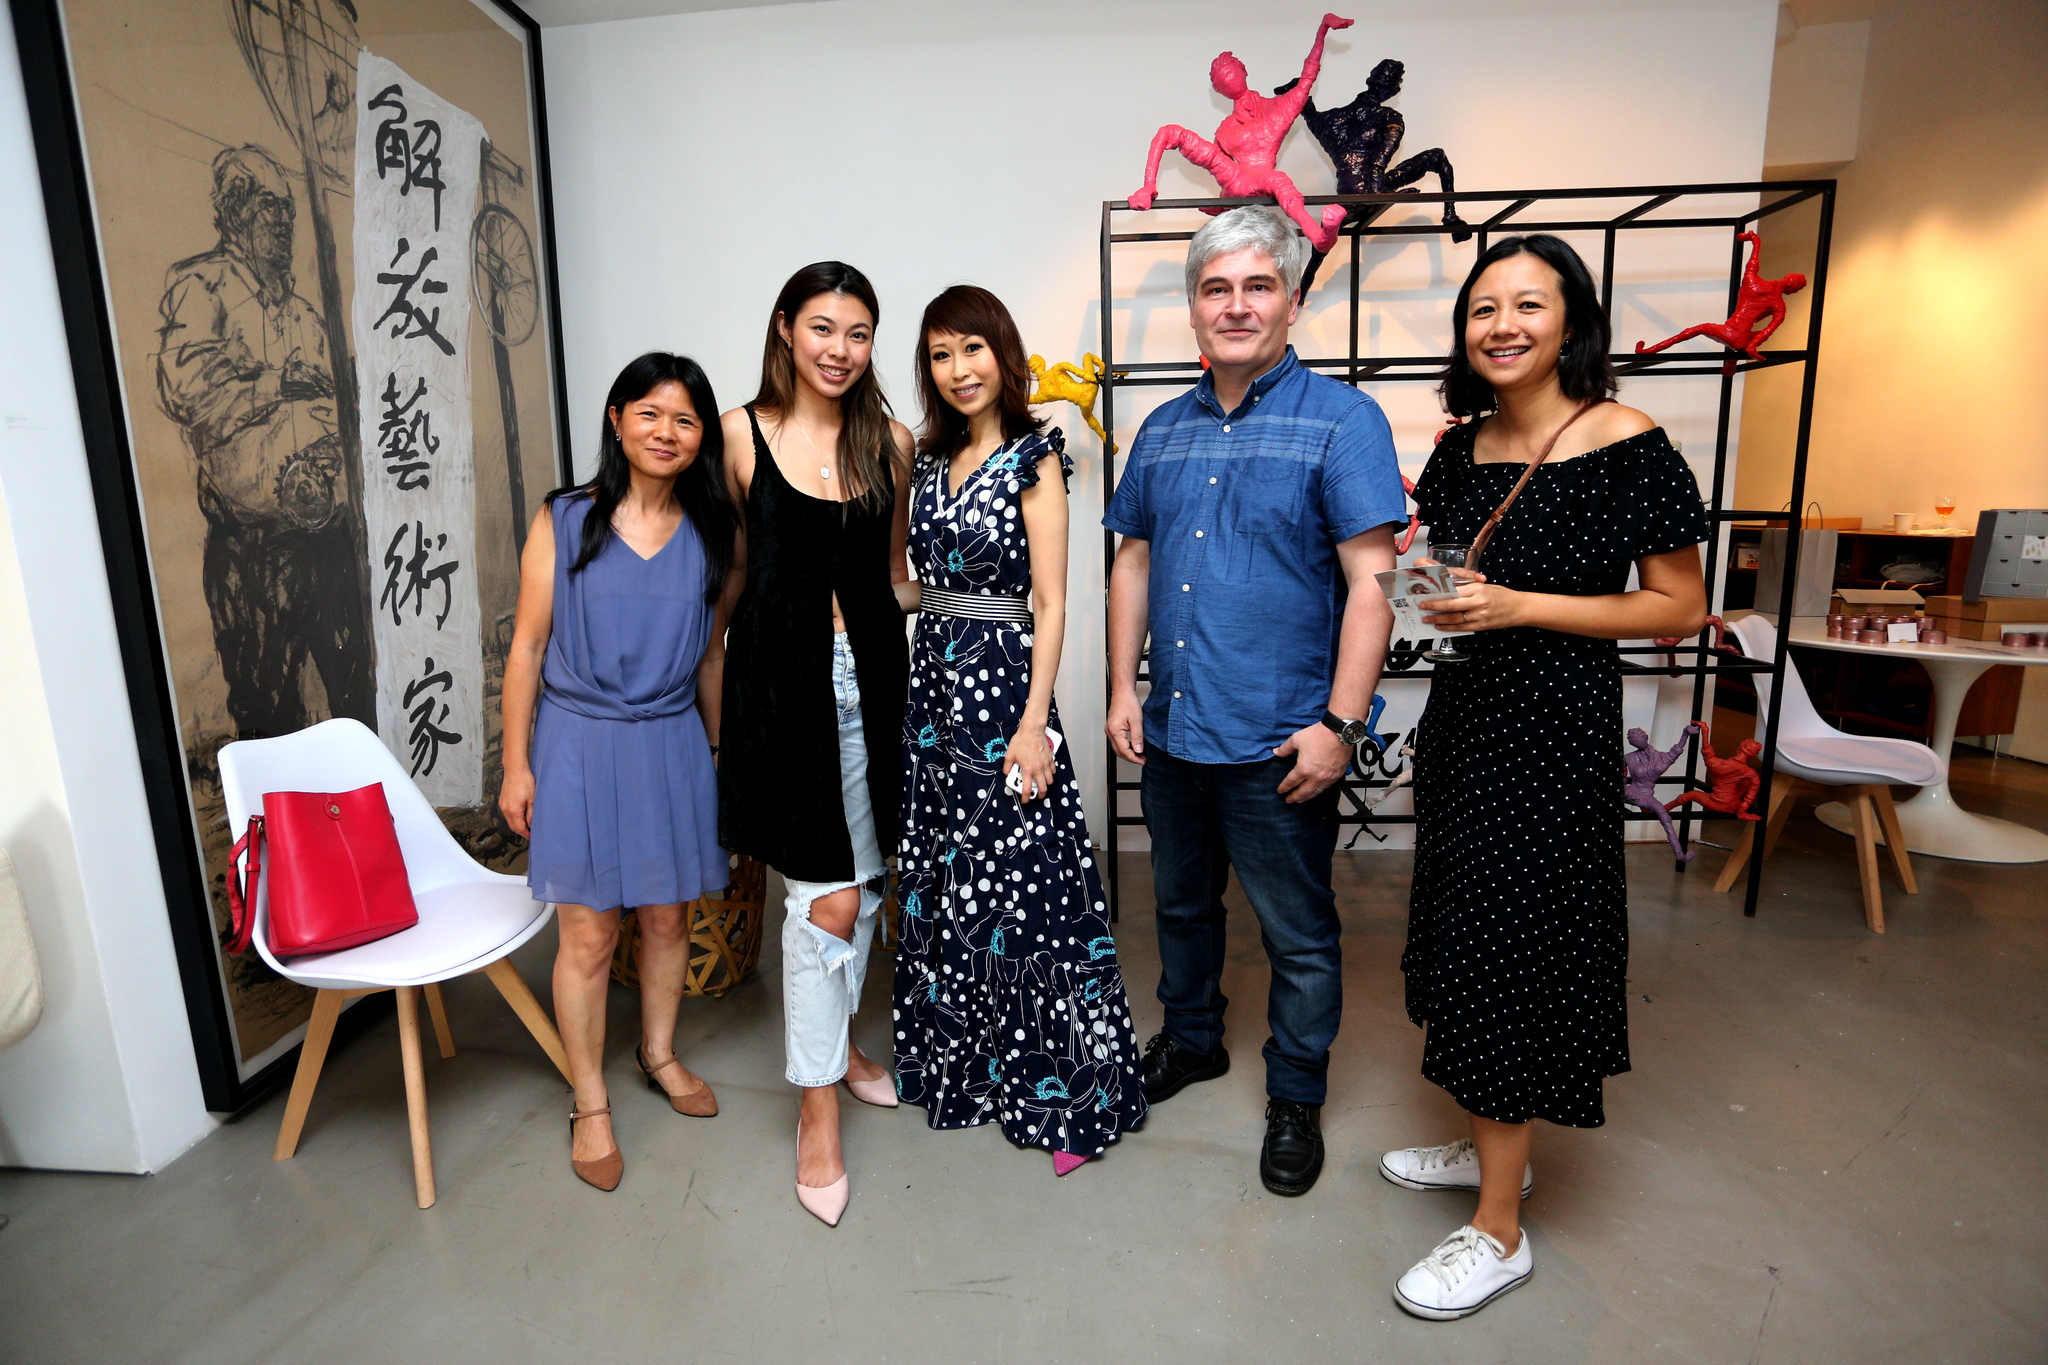 Stella and Christian of the Musuem Concept, with Kayla, SW and Helene of Kben & How